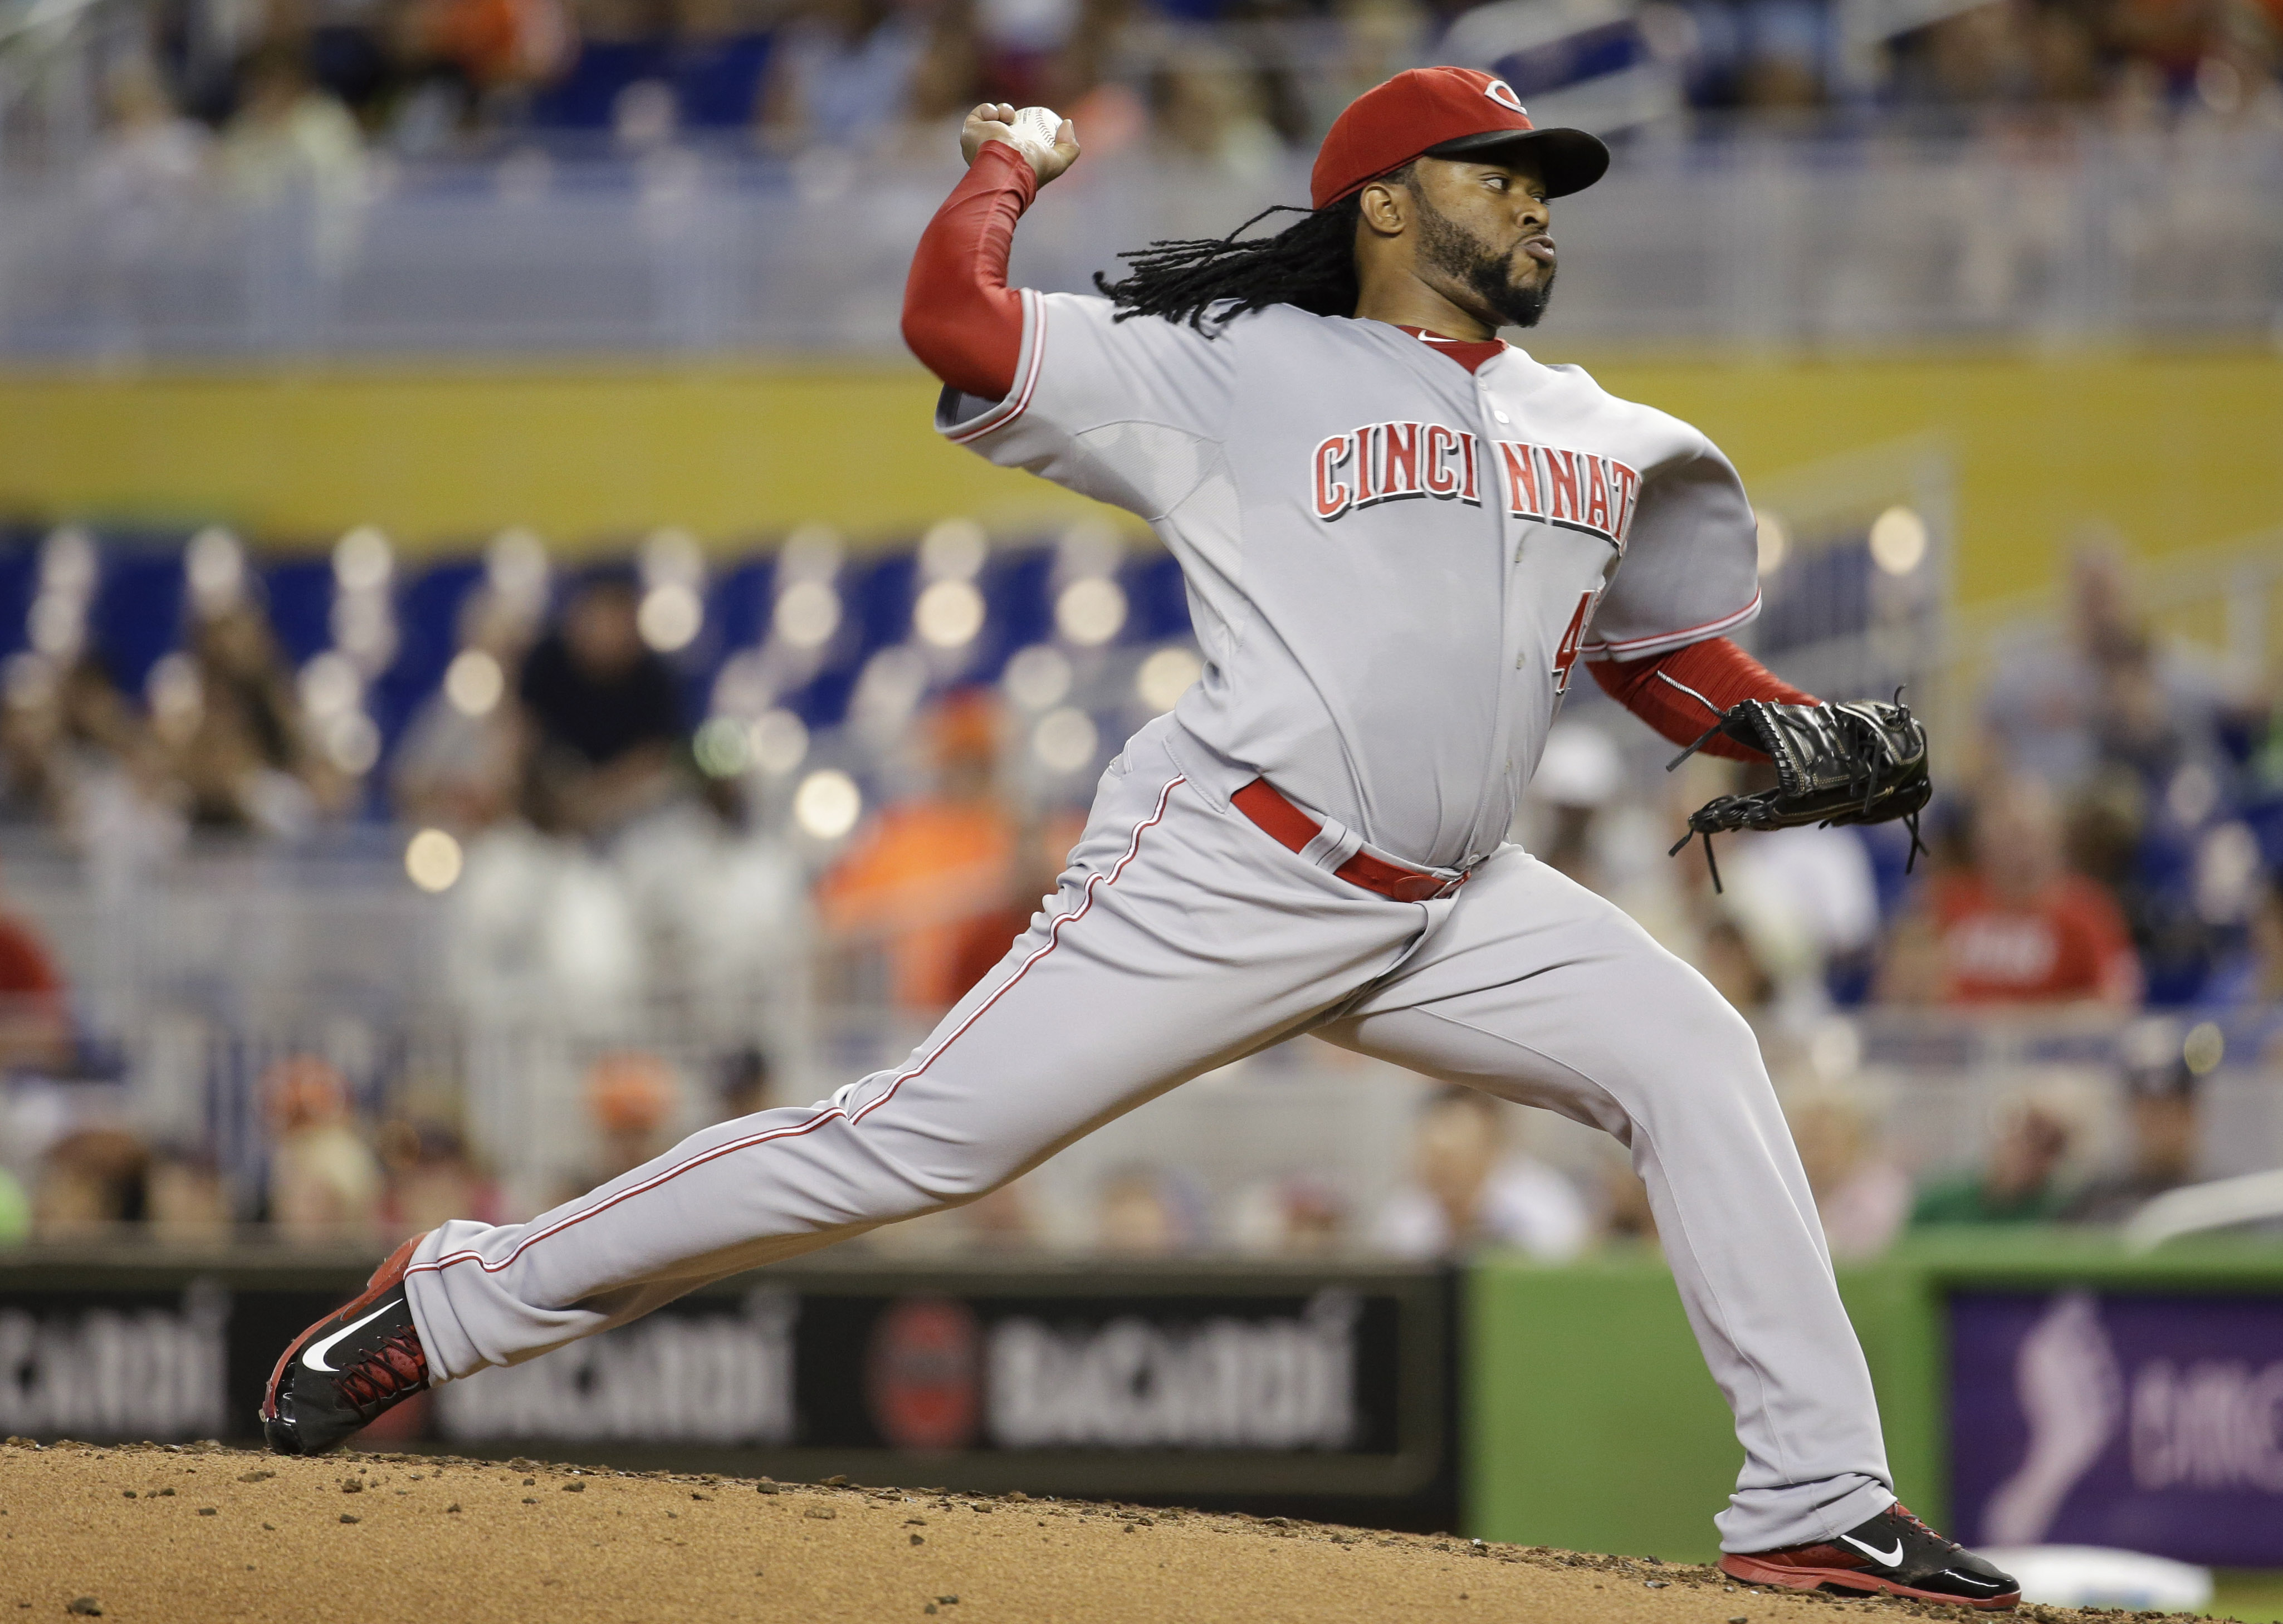 Cincinnati Reds starting pitcher Johnny Cueto throws in the first inning of a baseball game against the Miami Marlins, Sunday, July 12, 2015, in Miami. (AP Photo/Lynne Sladky)